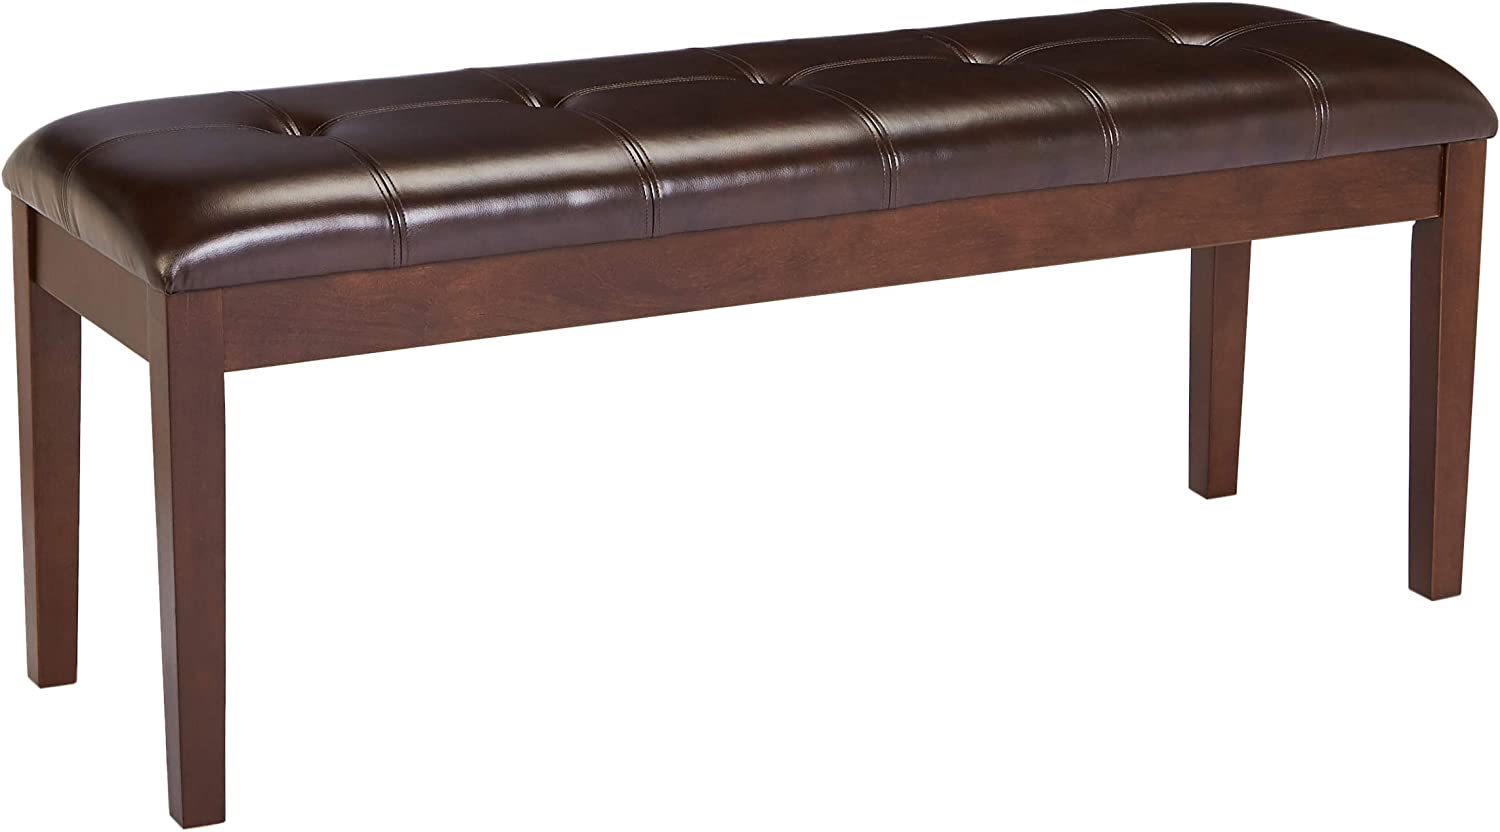 Red Hook Barcelona Wooden Bench with Faux-Leather Upholstered Cushion – Bittersweet Brown